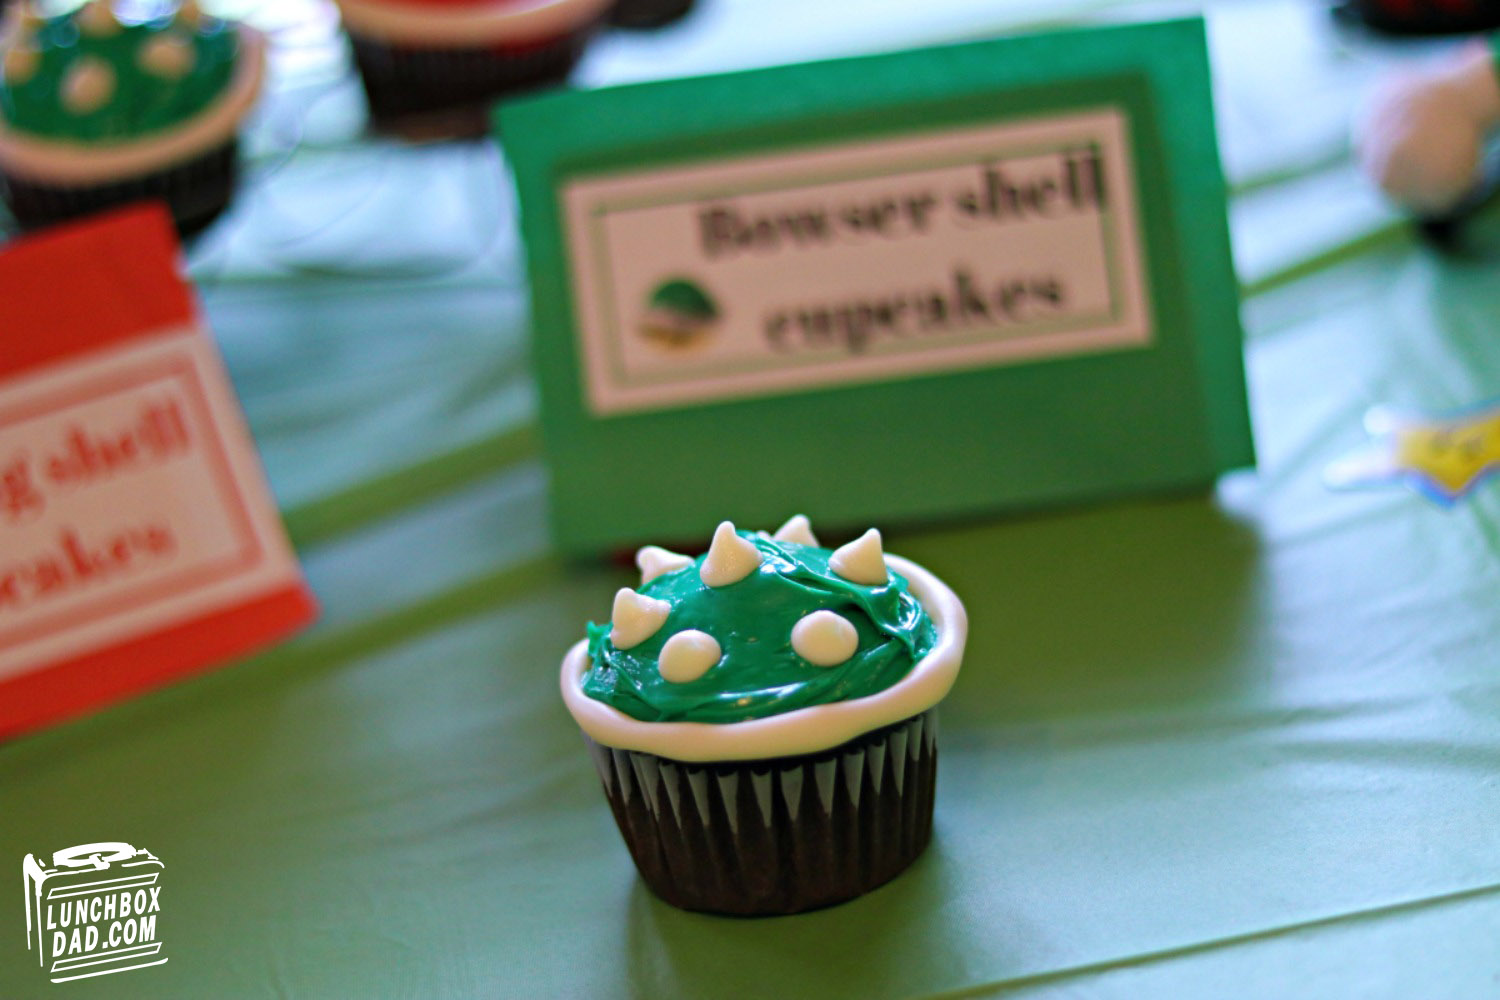 Lunchbox Dad How To Throw An Amazing Nintendo Themed Birthday Party